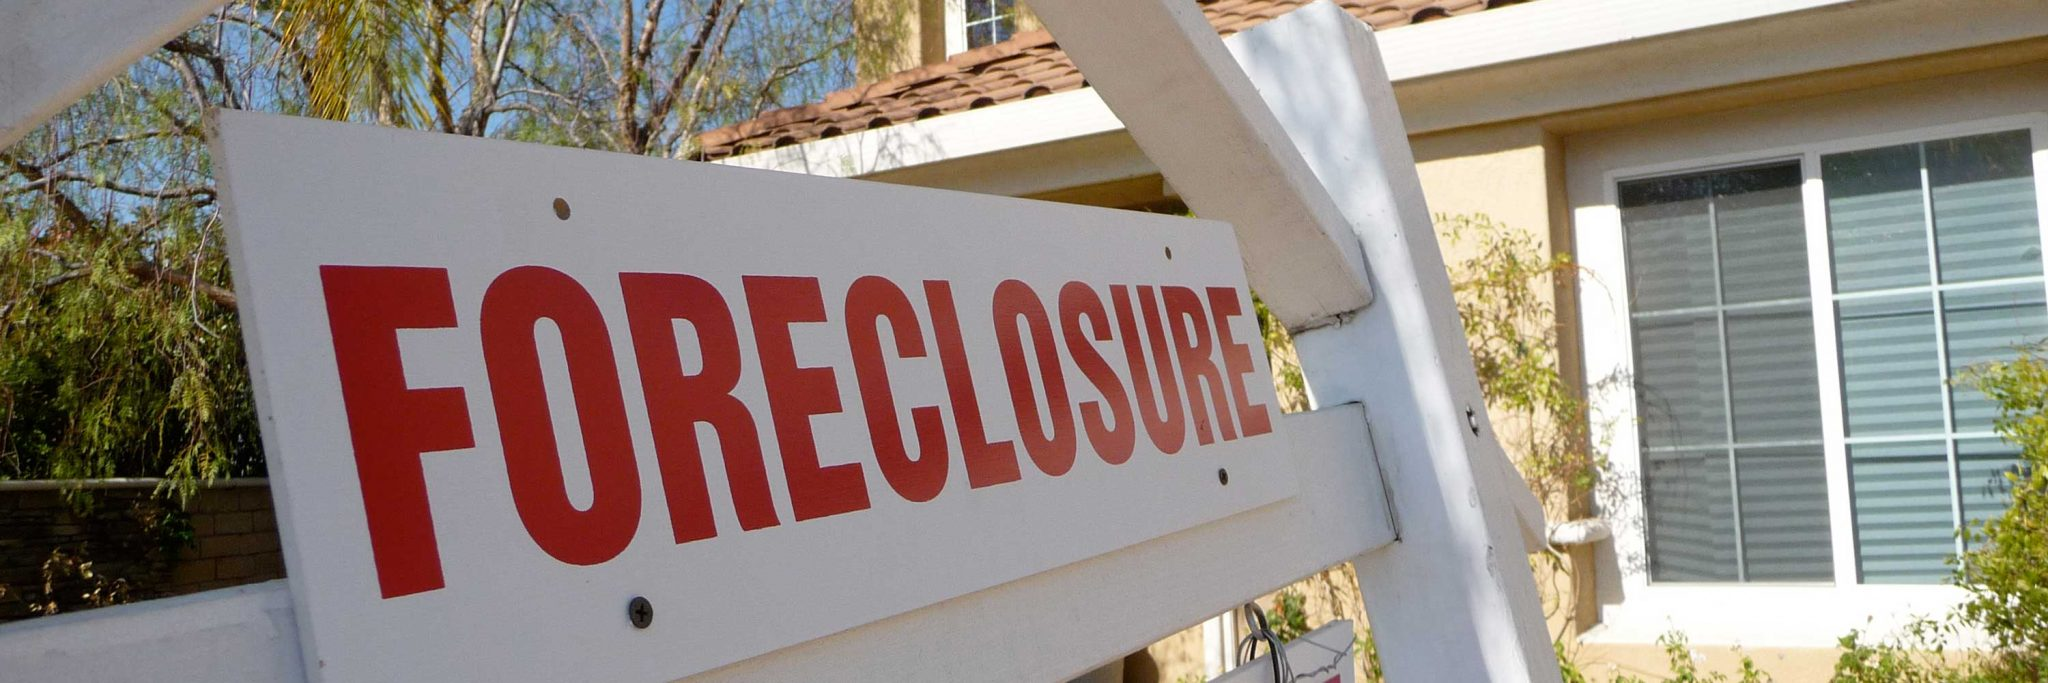 foreclosure junk removal services banner - image of a foreclosure sign